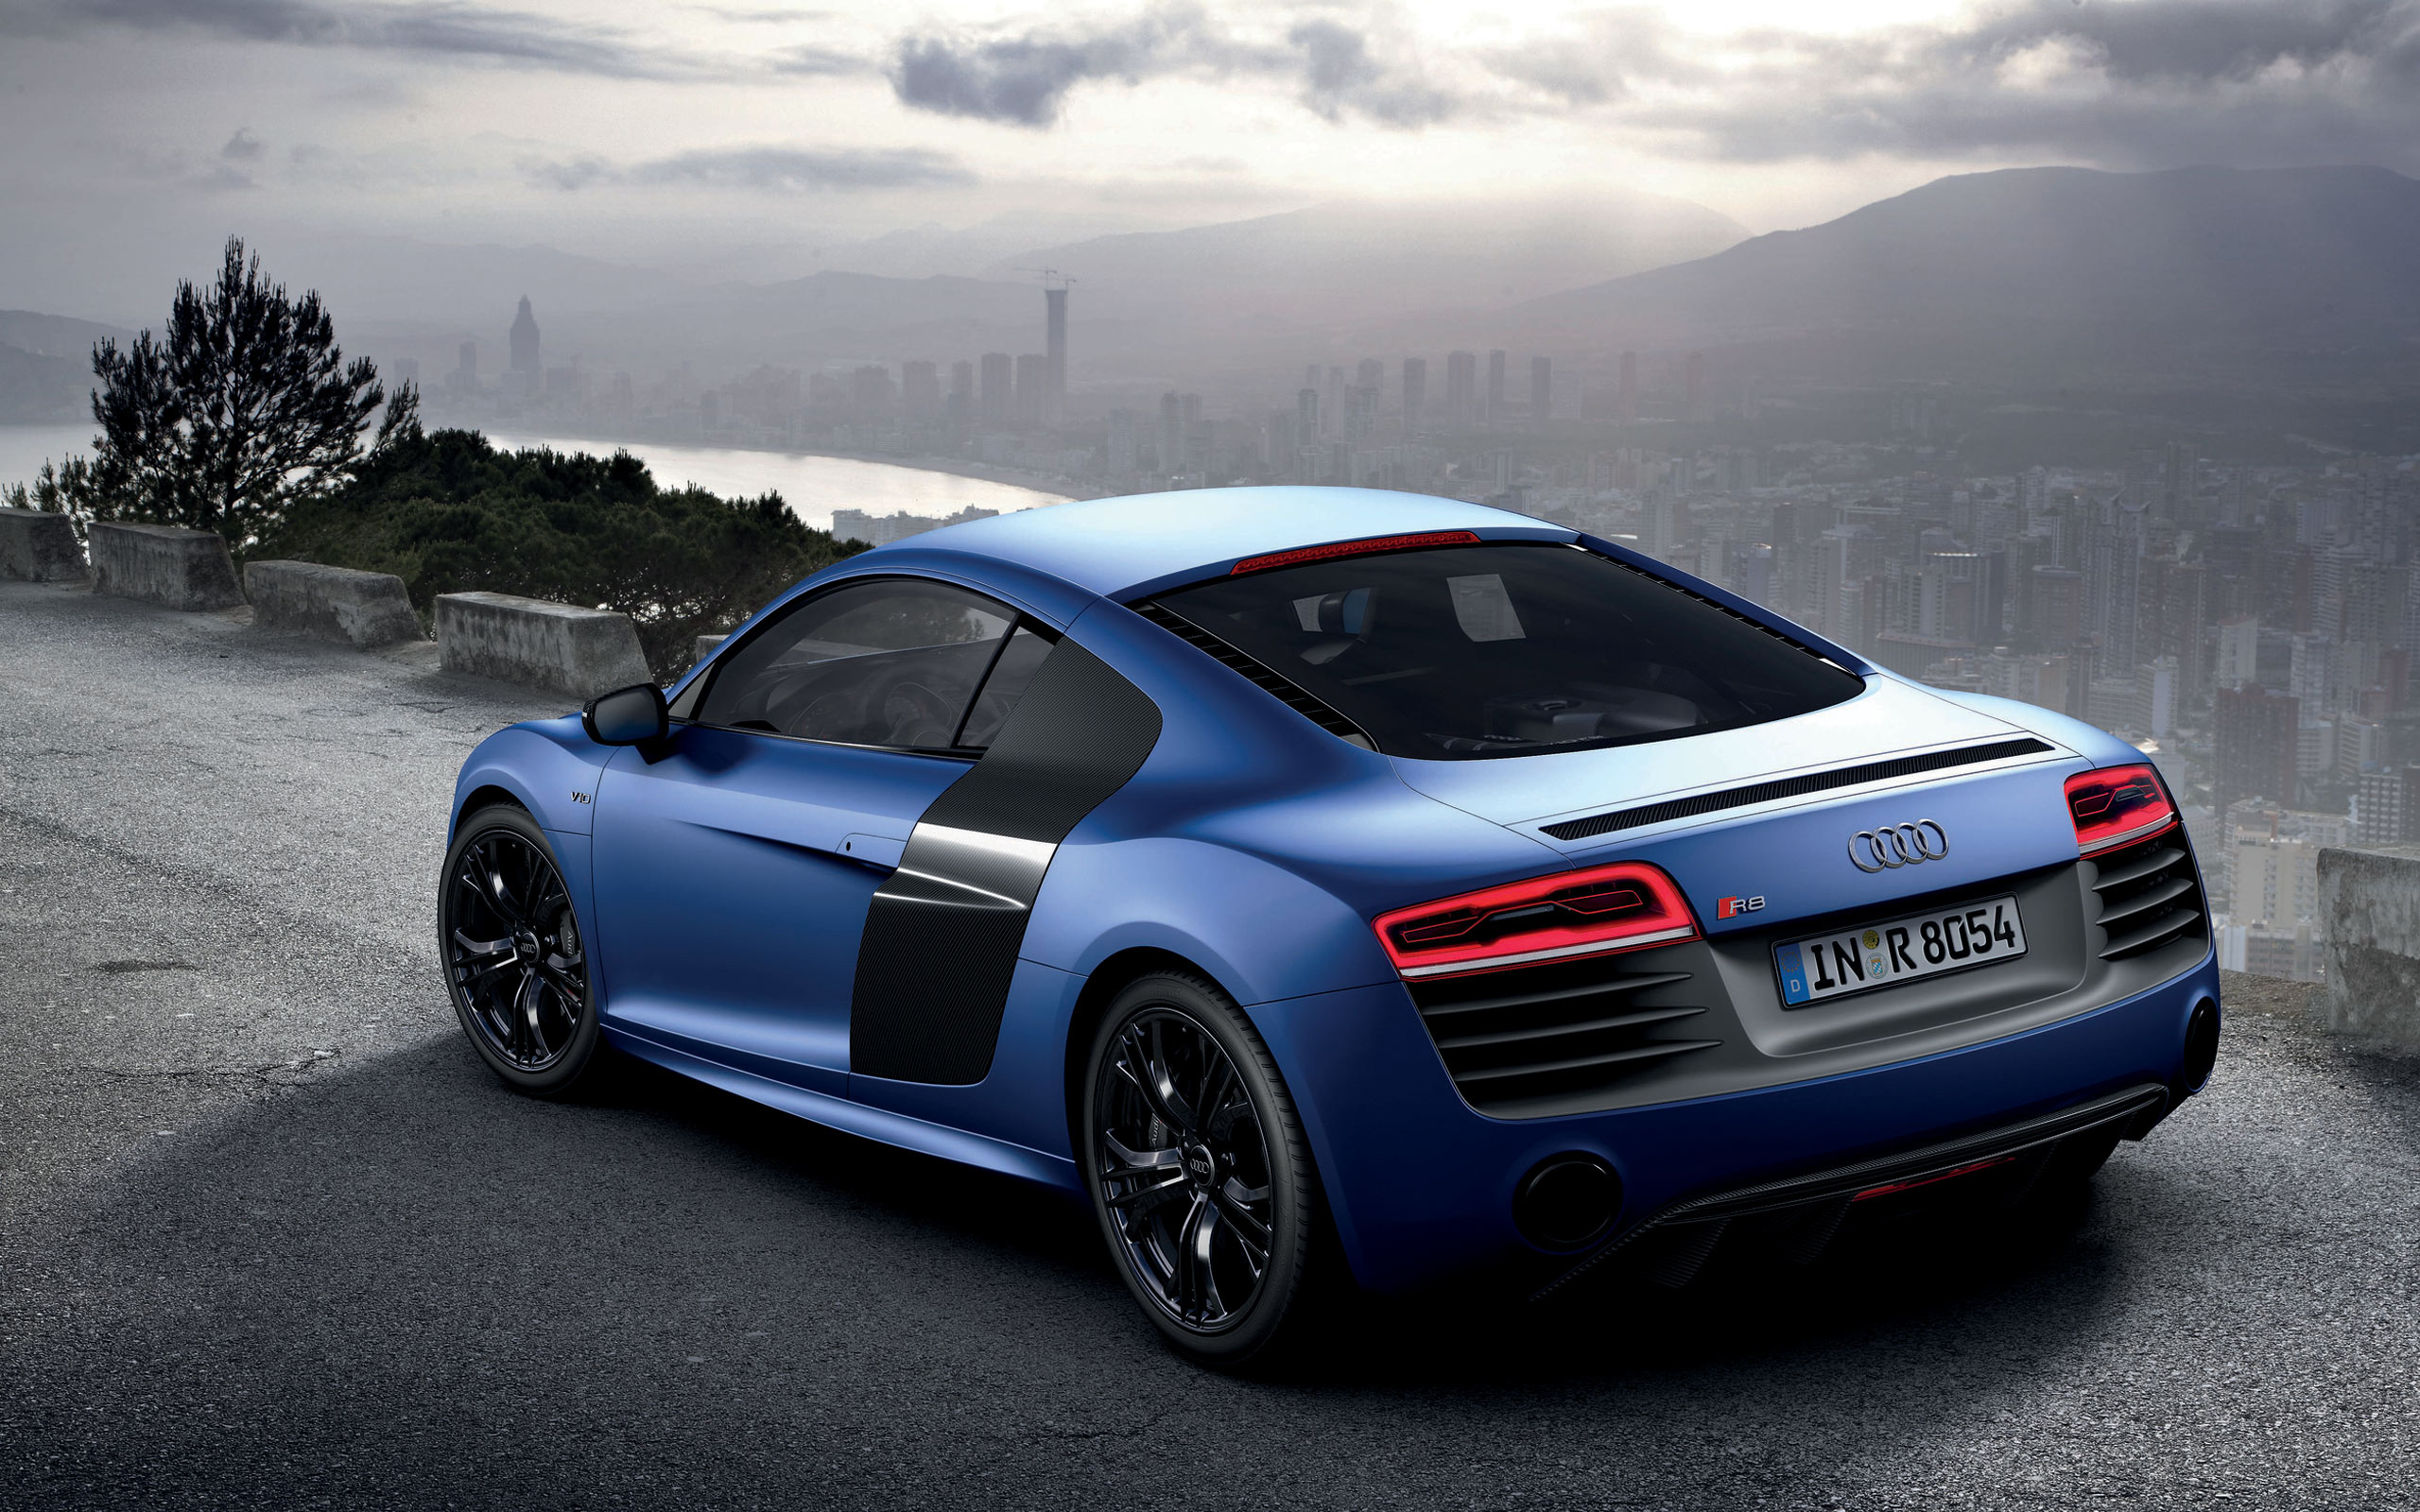 2013 Audi R8 V10 Plus 2 Wallpaper HD Car Wallpapers 2560x1600